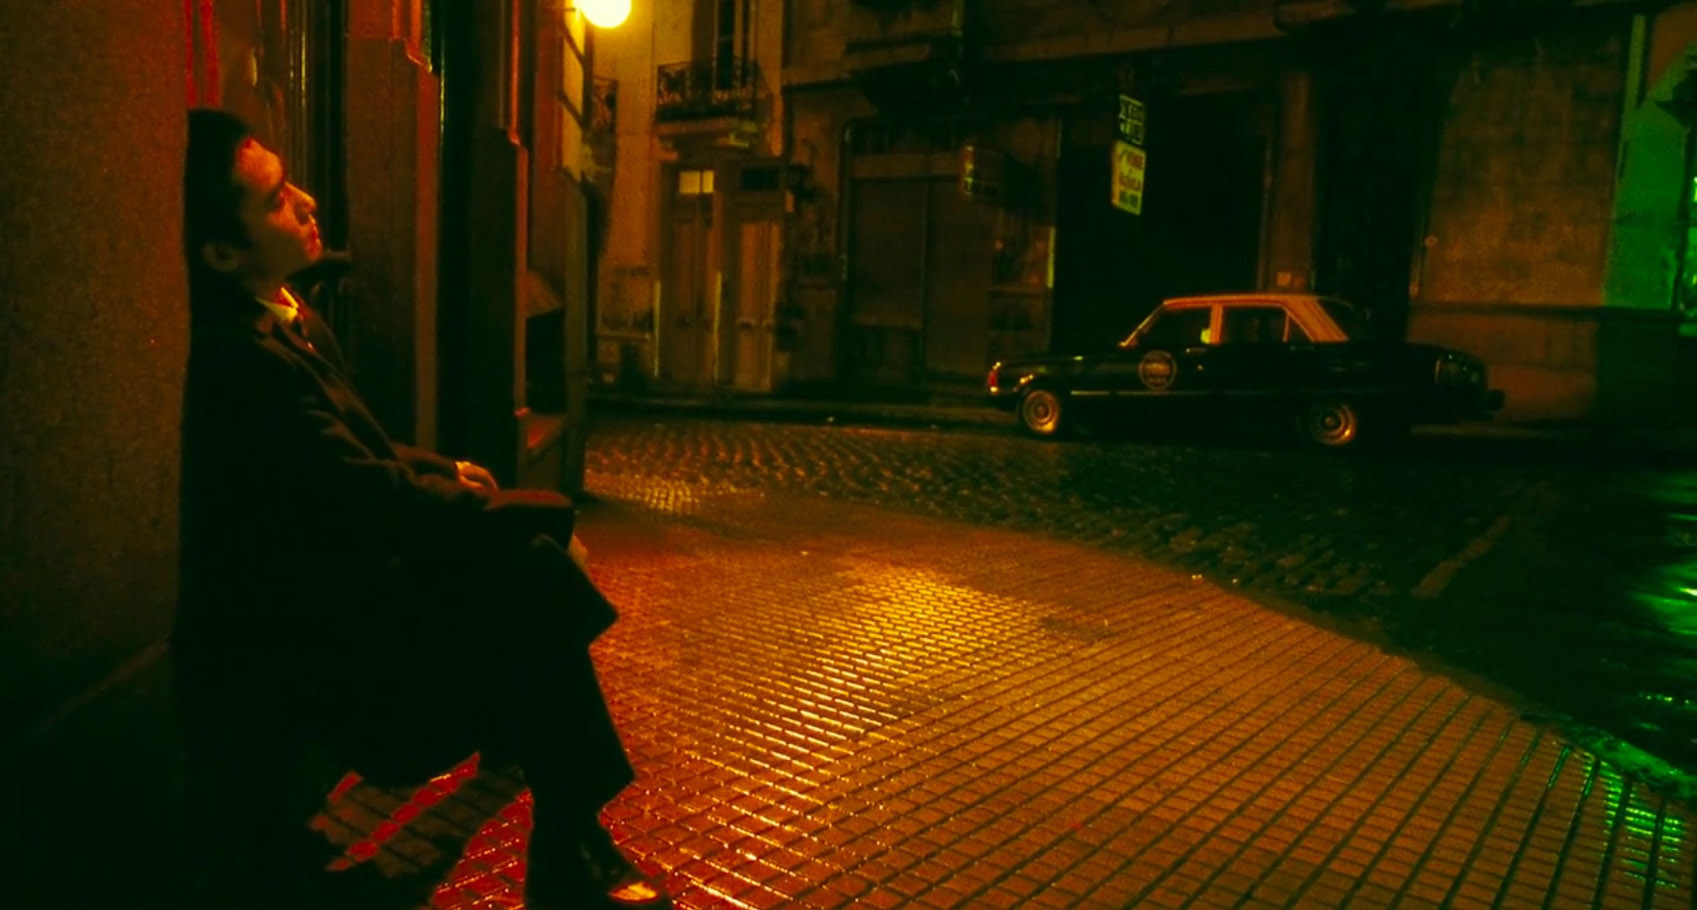 wong-kar-wai-happy-together-08.jpg